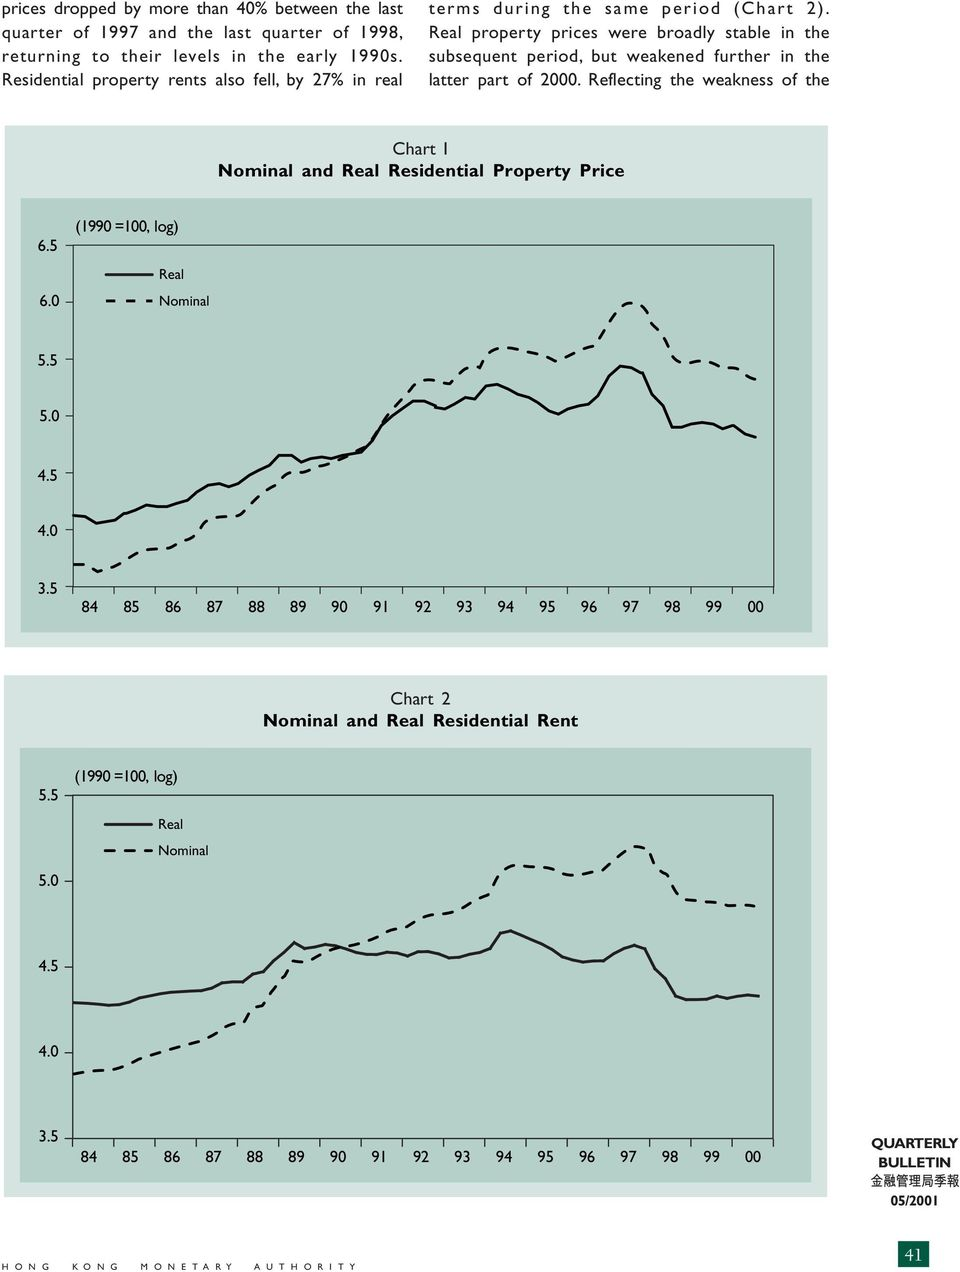 Real property prices were broadly stable in the subsequent period, but weakened further in the latter part of 2000.